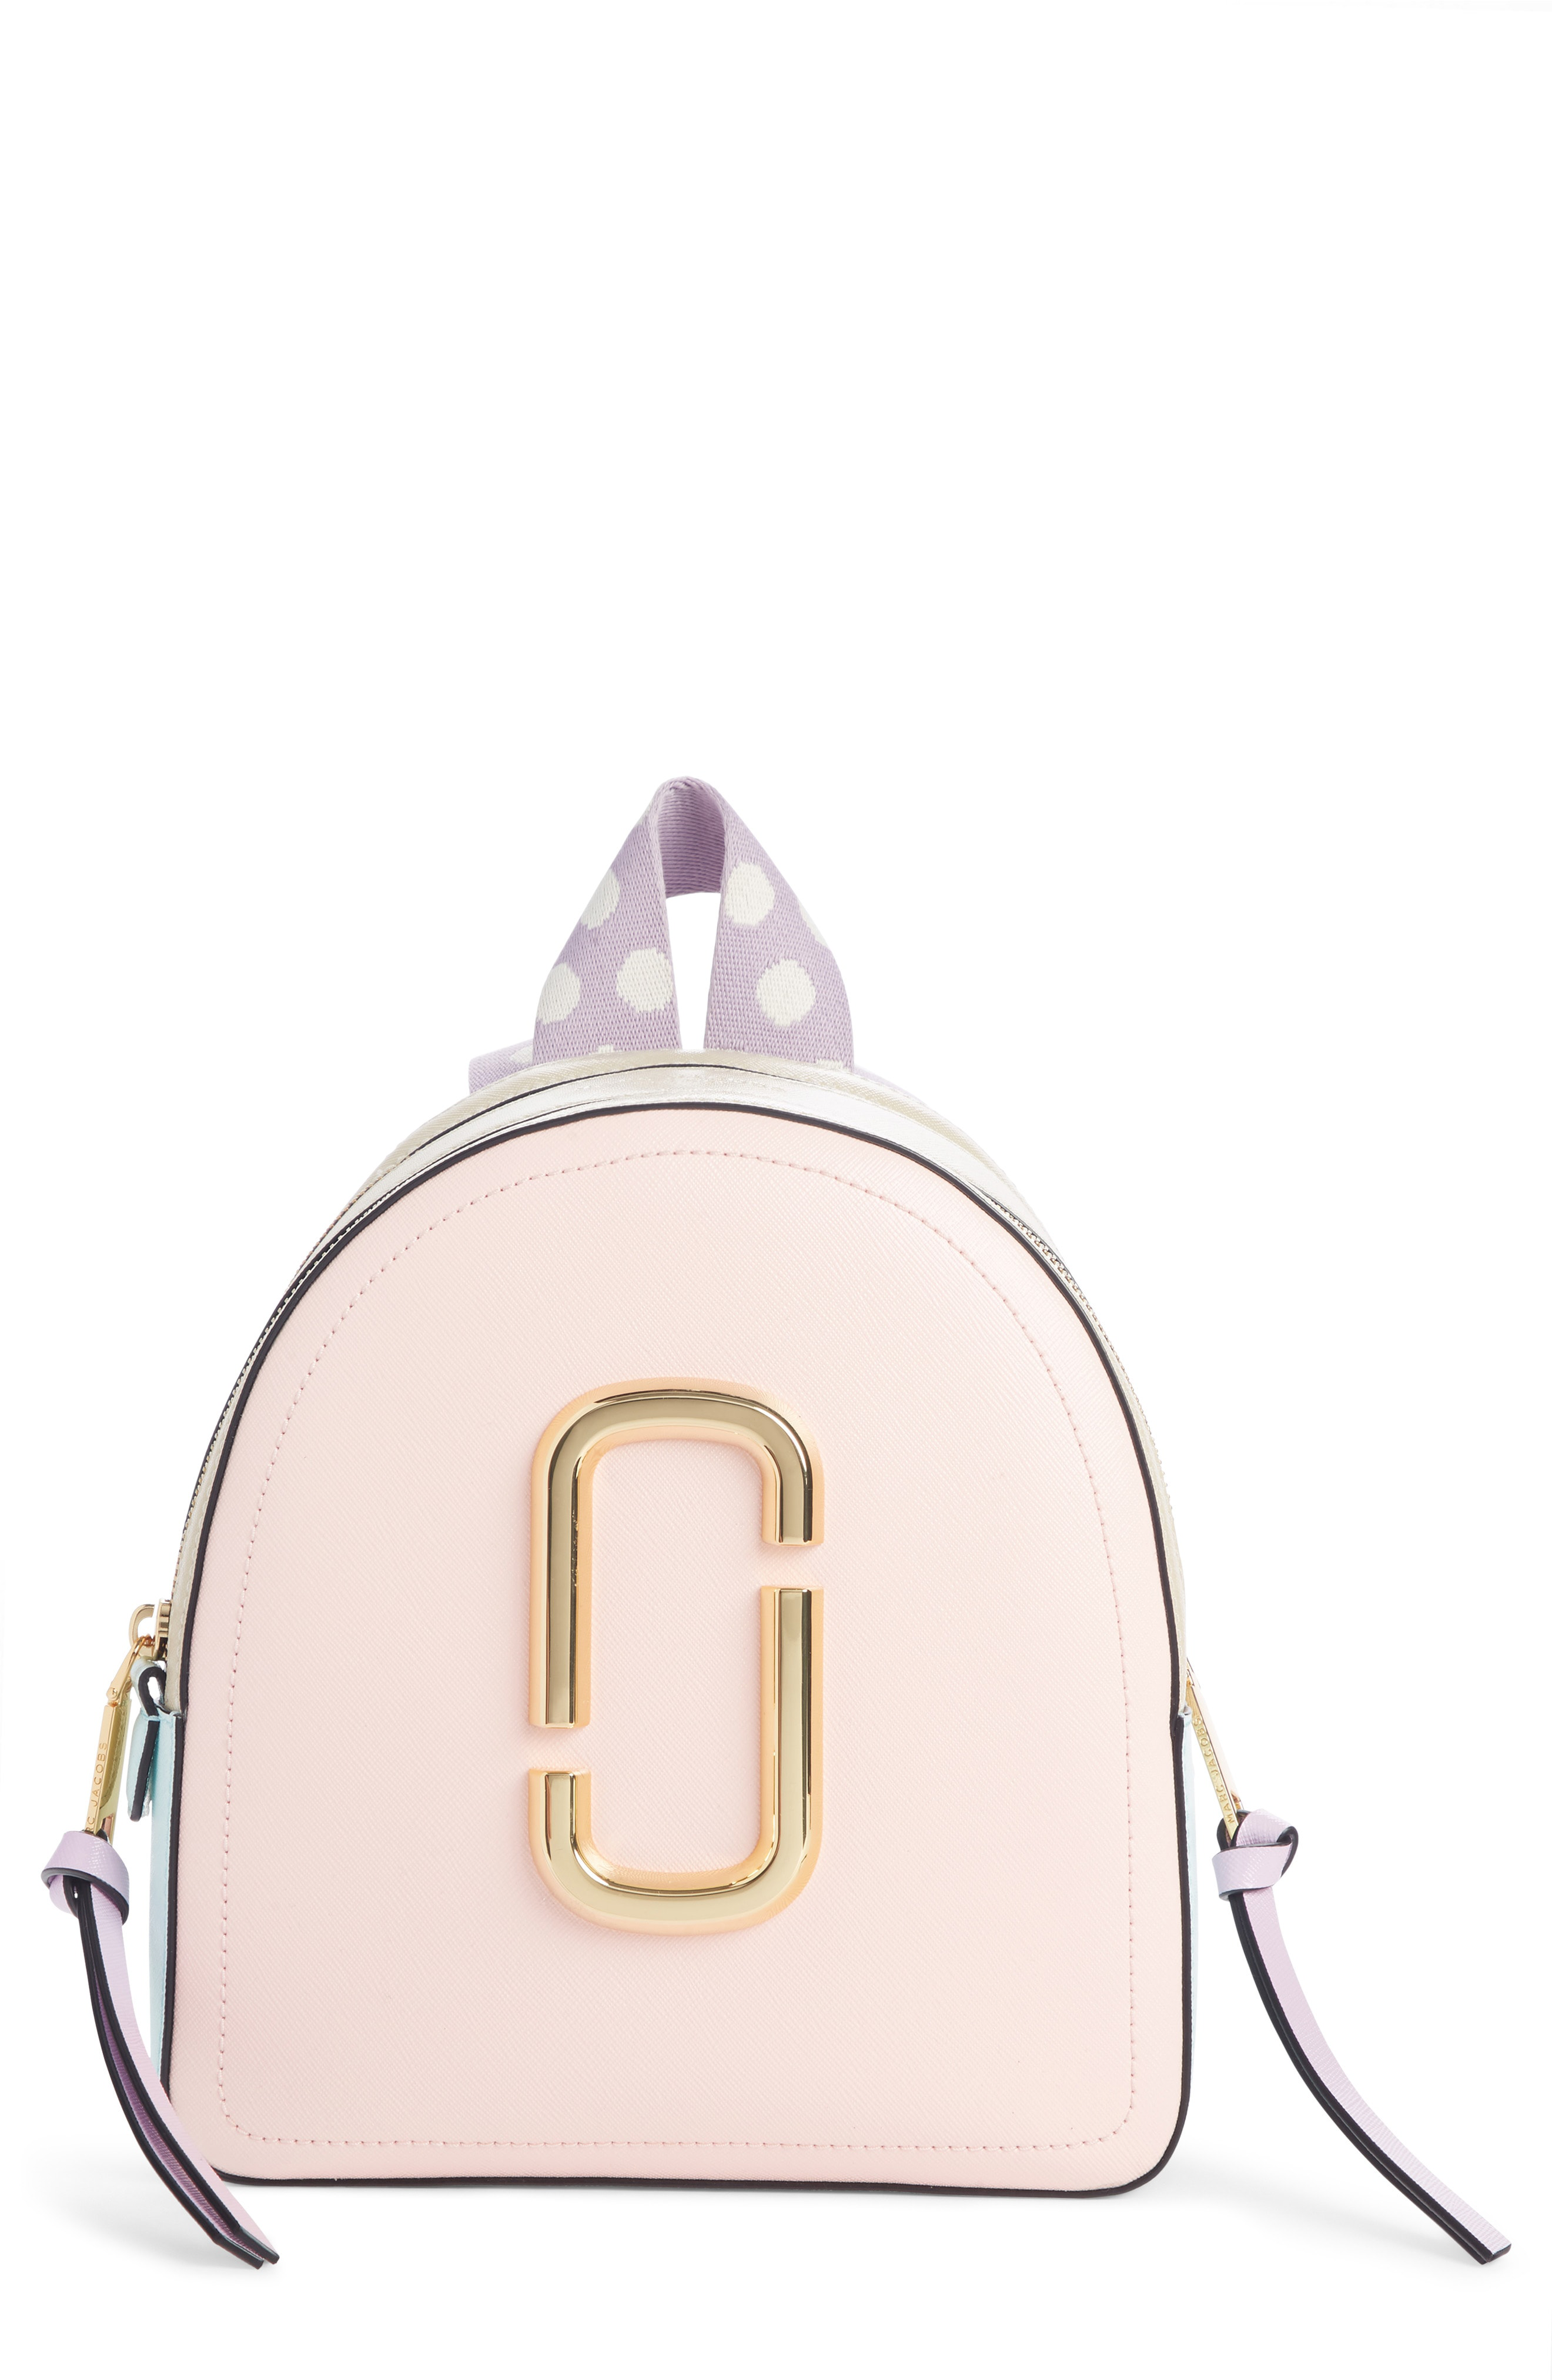 8dce0dc228aa Marc Jacobs Pack Shot Leather Backpack - Pink In Blush Multi